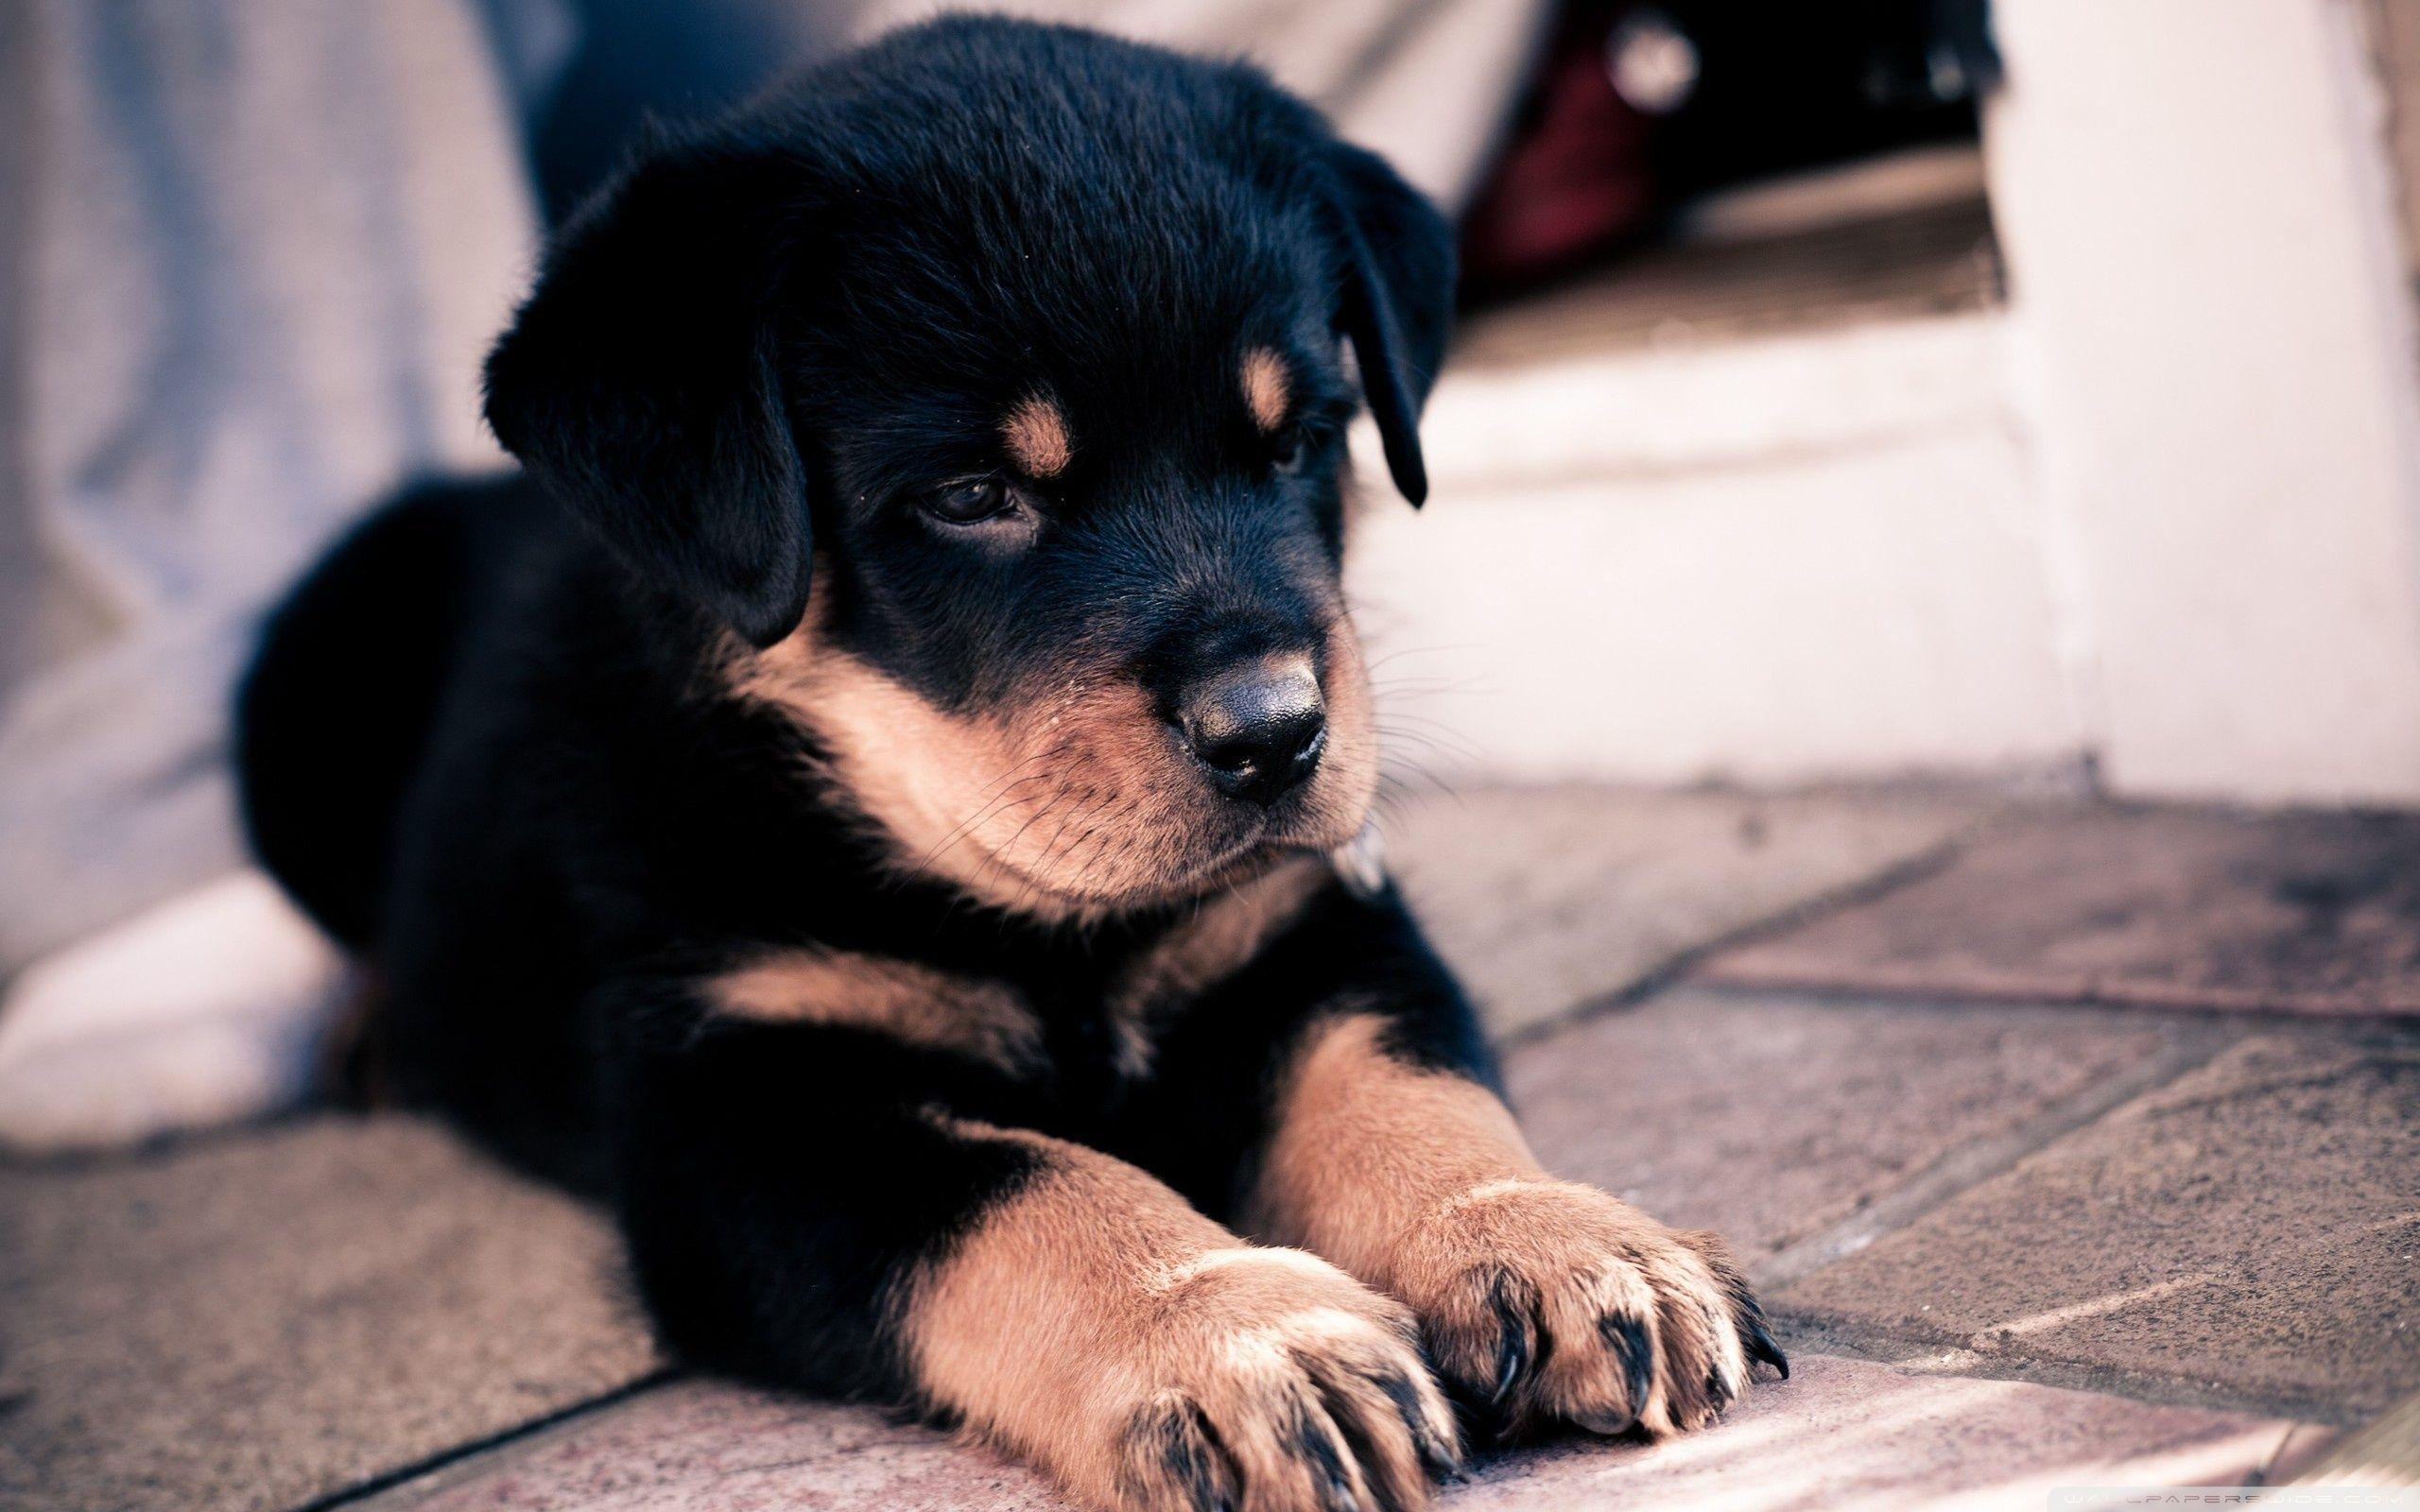 Cute Rottweiler Puppy HD desktop wallpapers : High Definition